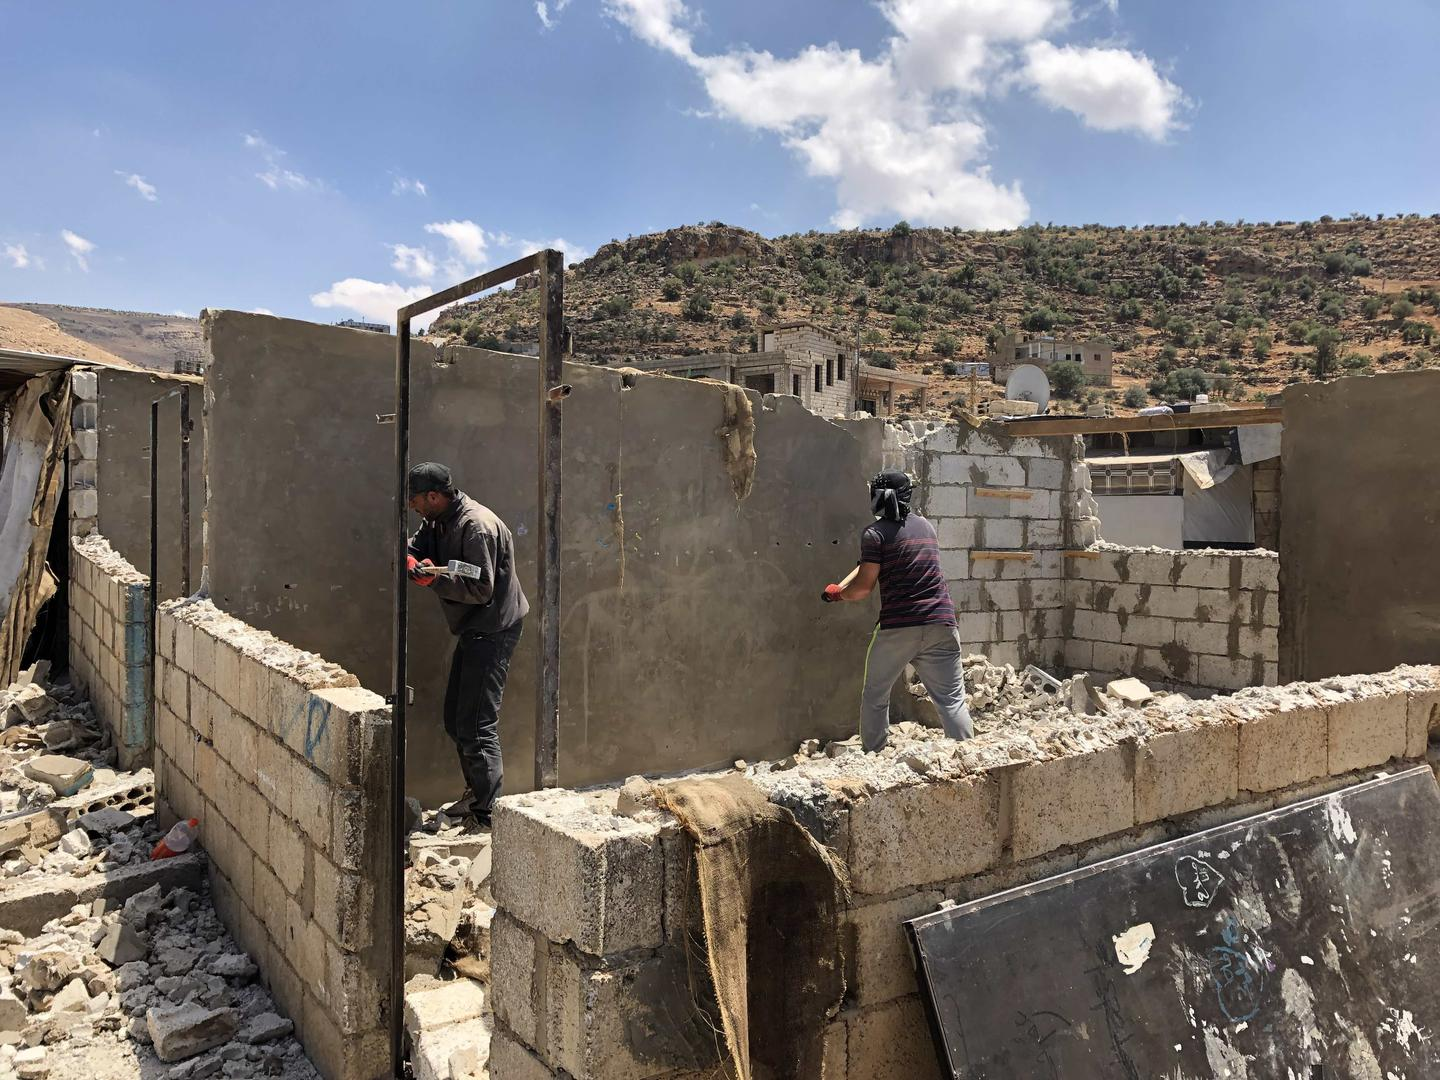 Men work to dismantle the walls of a shelter in a Syrian refugee camp in Arsal, Lebanon.